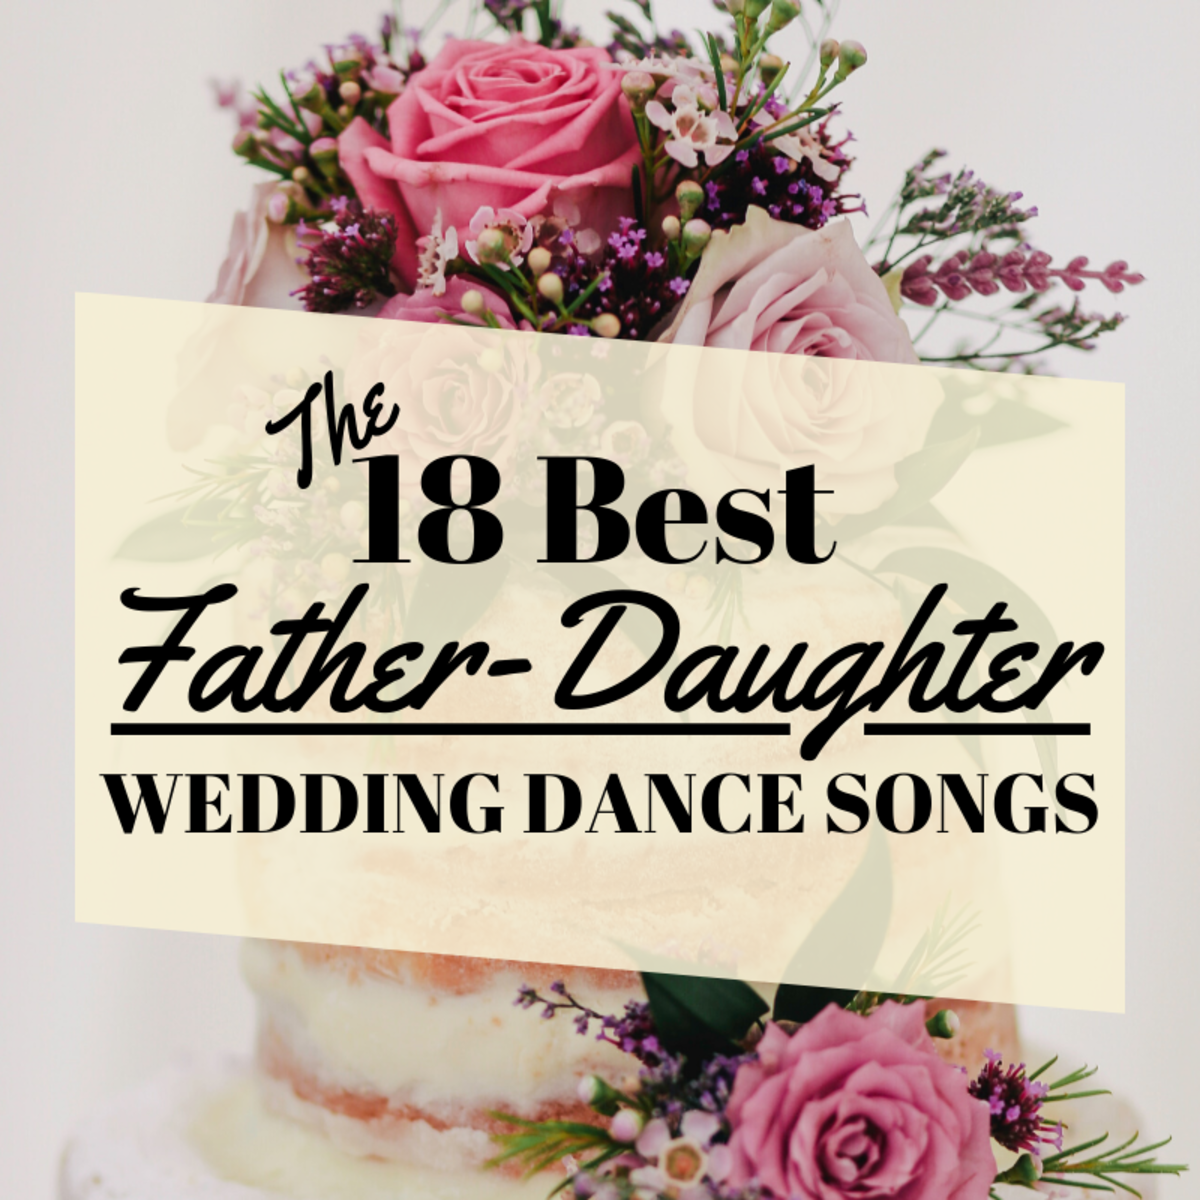 The 18 Best Father-Daughter Wedding Dance Songs